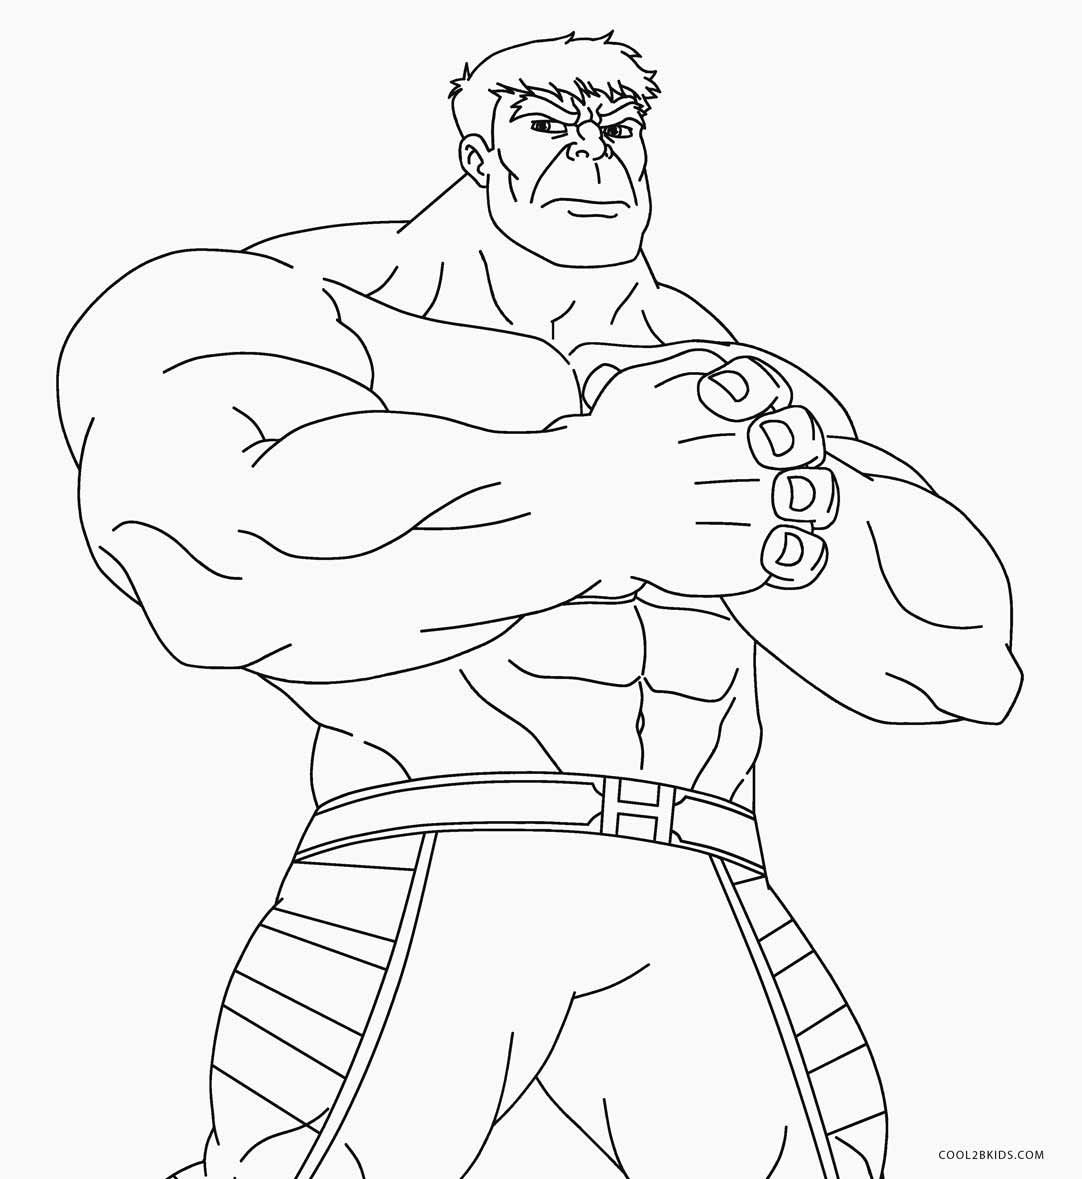 Hulk Coloring Pages Ideas Free Coloring Sheets Hulk Coloring Pages Avengers Coloring Coloring Pages